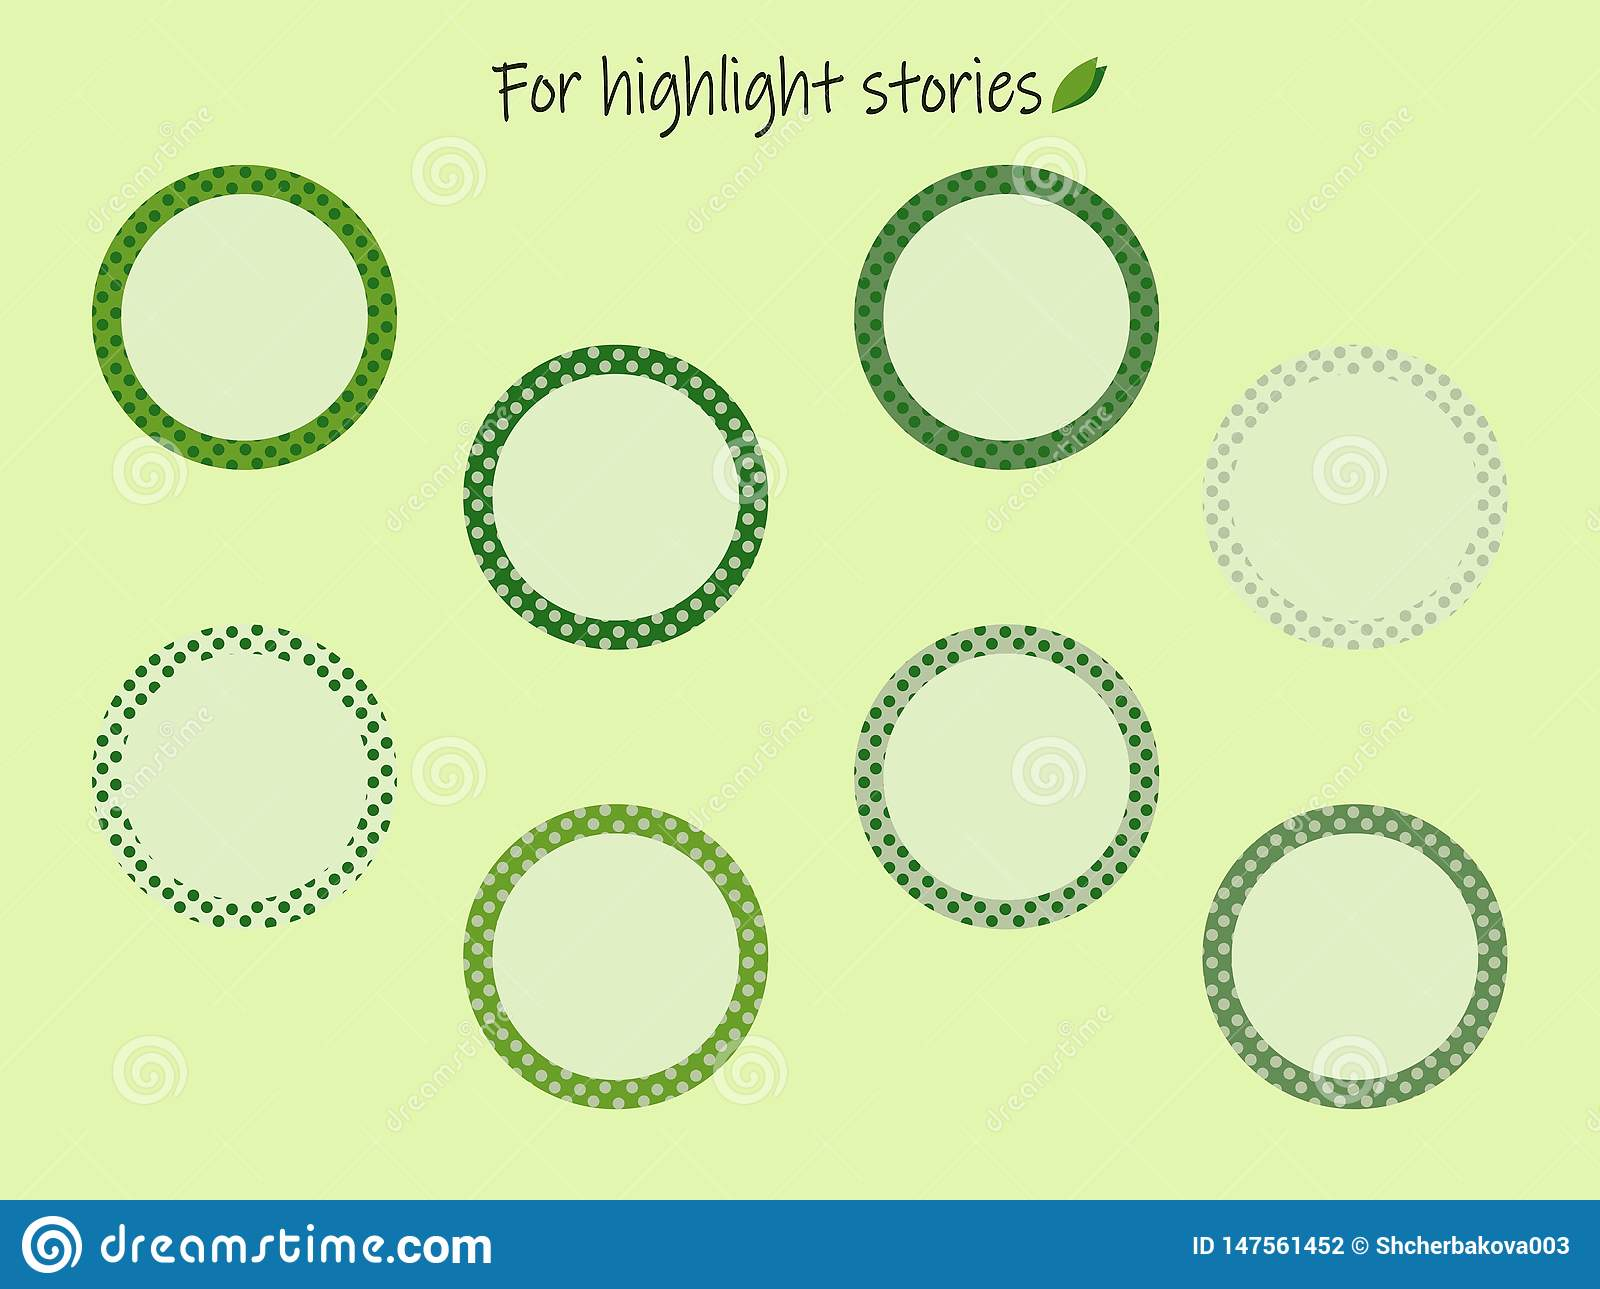 Highlights Story icons with green peas for the inscriptions